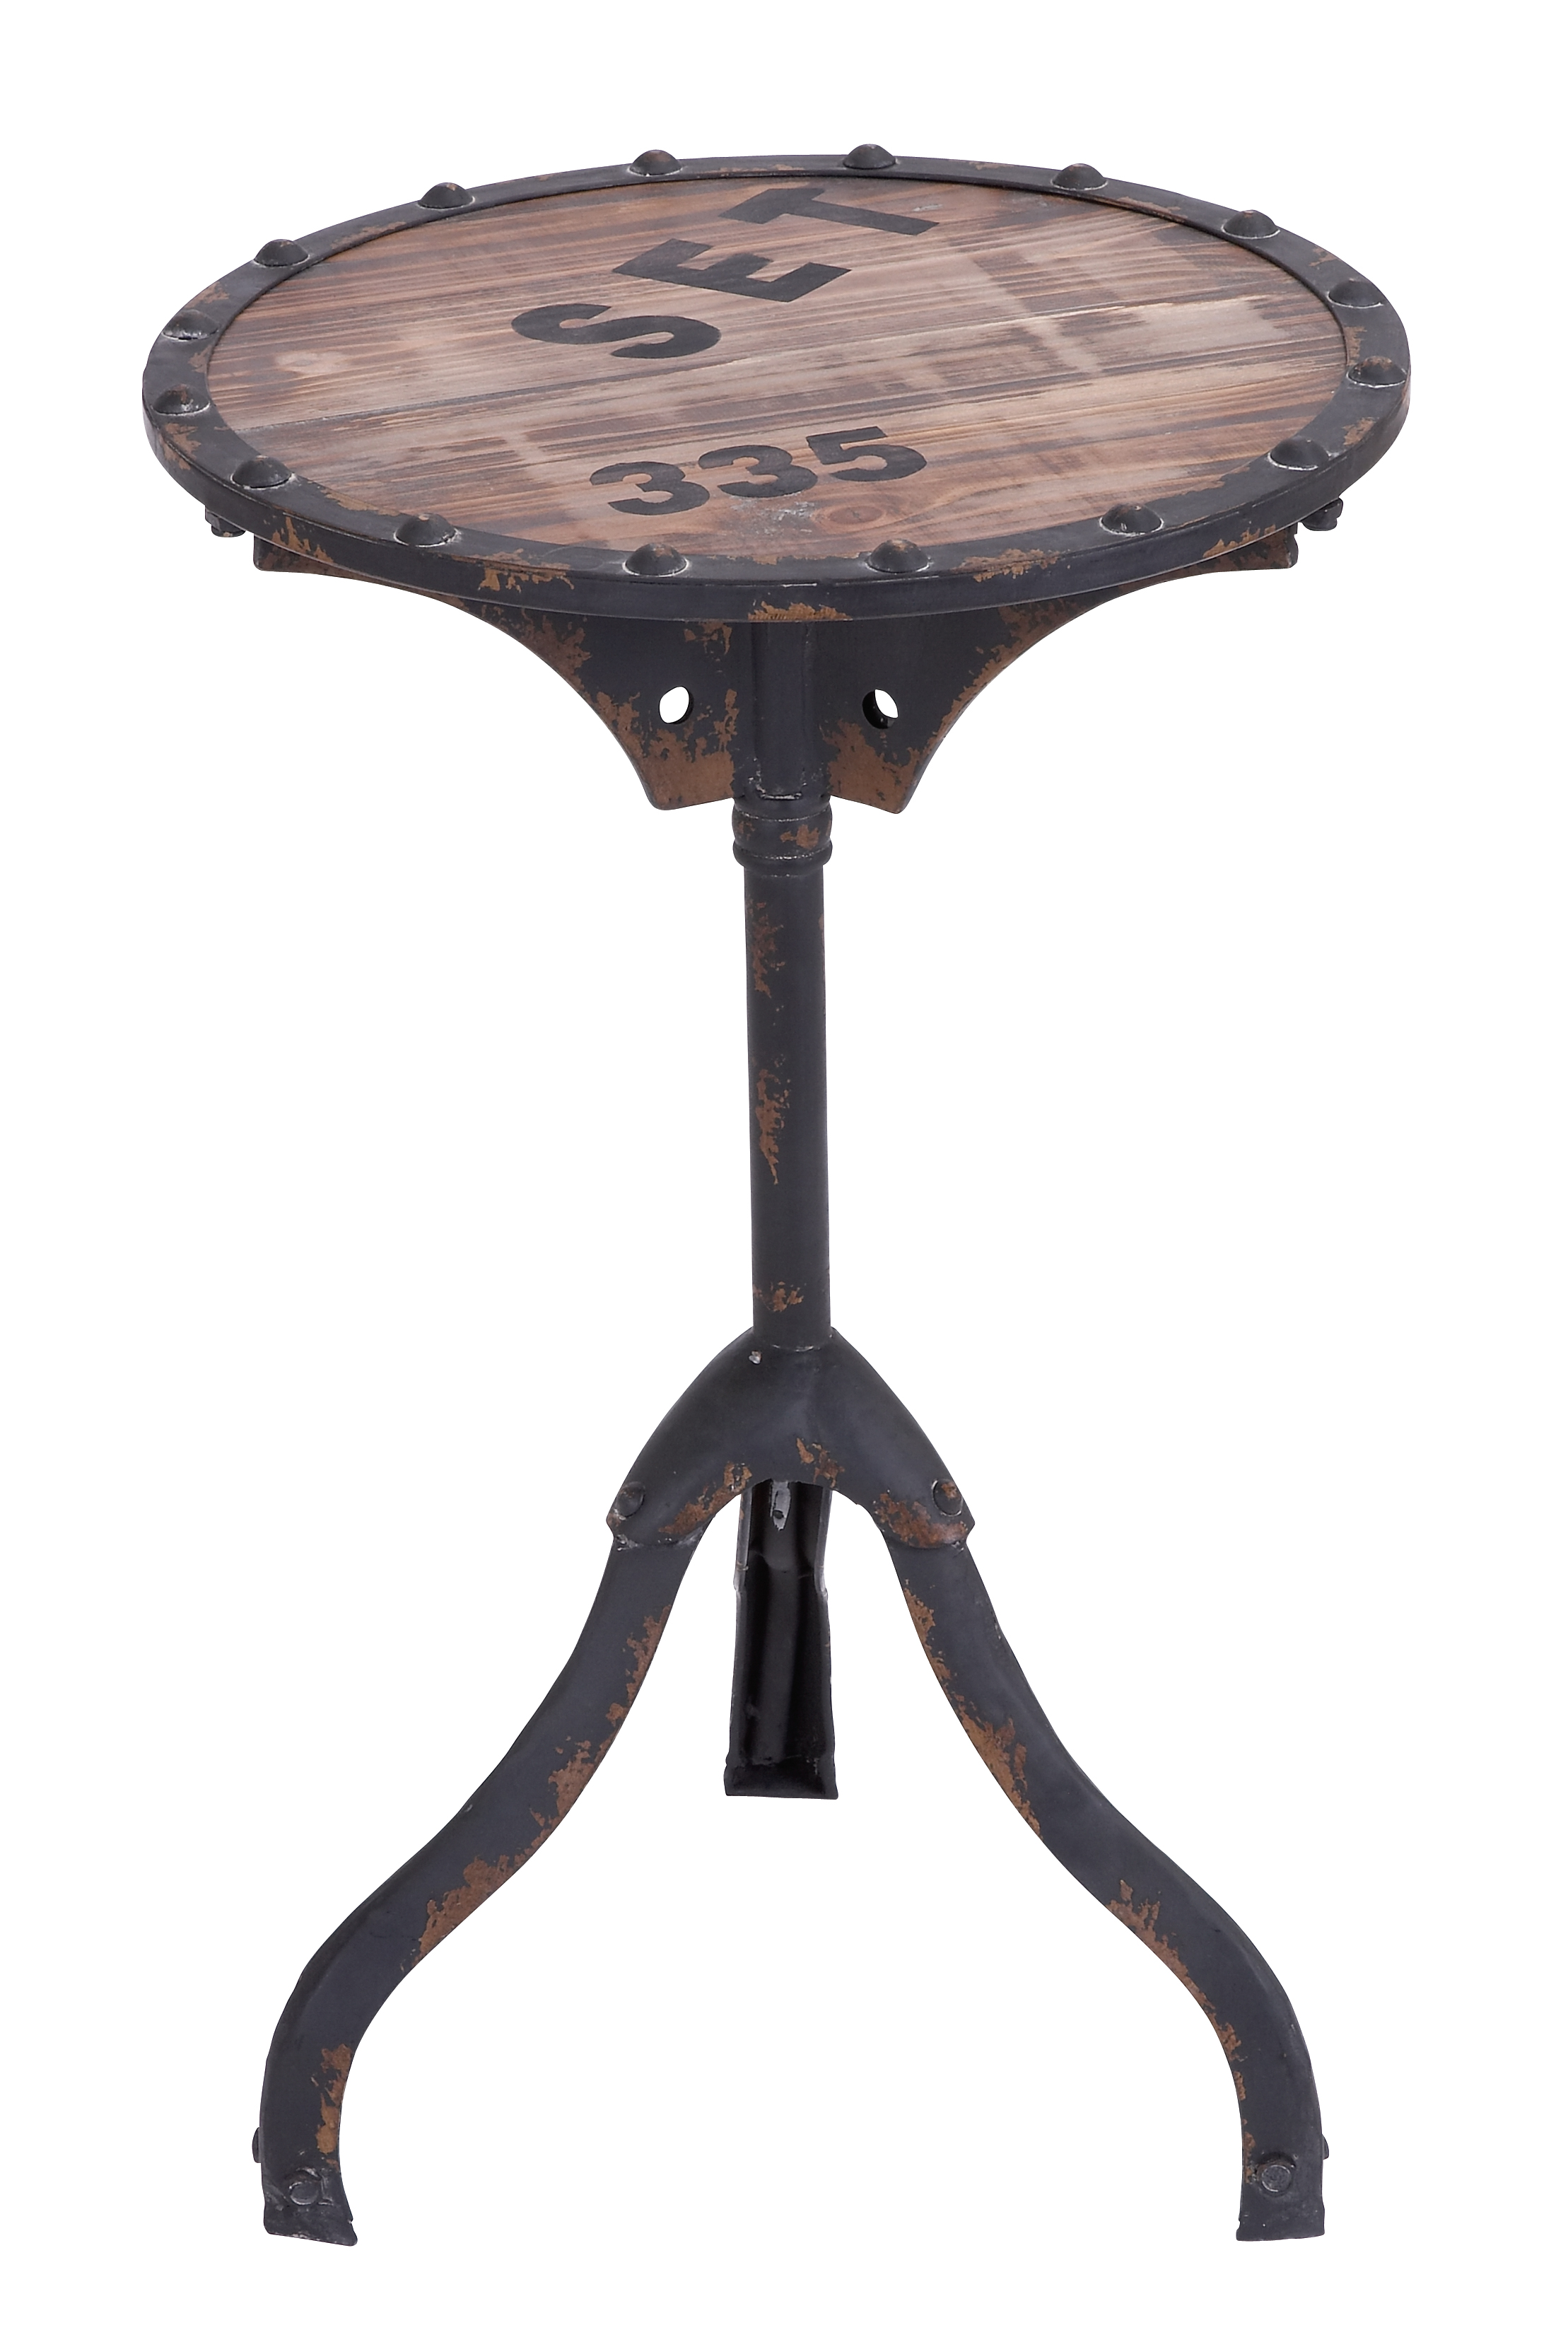 Decmode 24 Inch Rustic Round Iron and Wood Accent Table With Vintage Graphics, Brown by DecMode